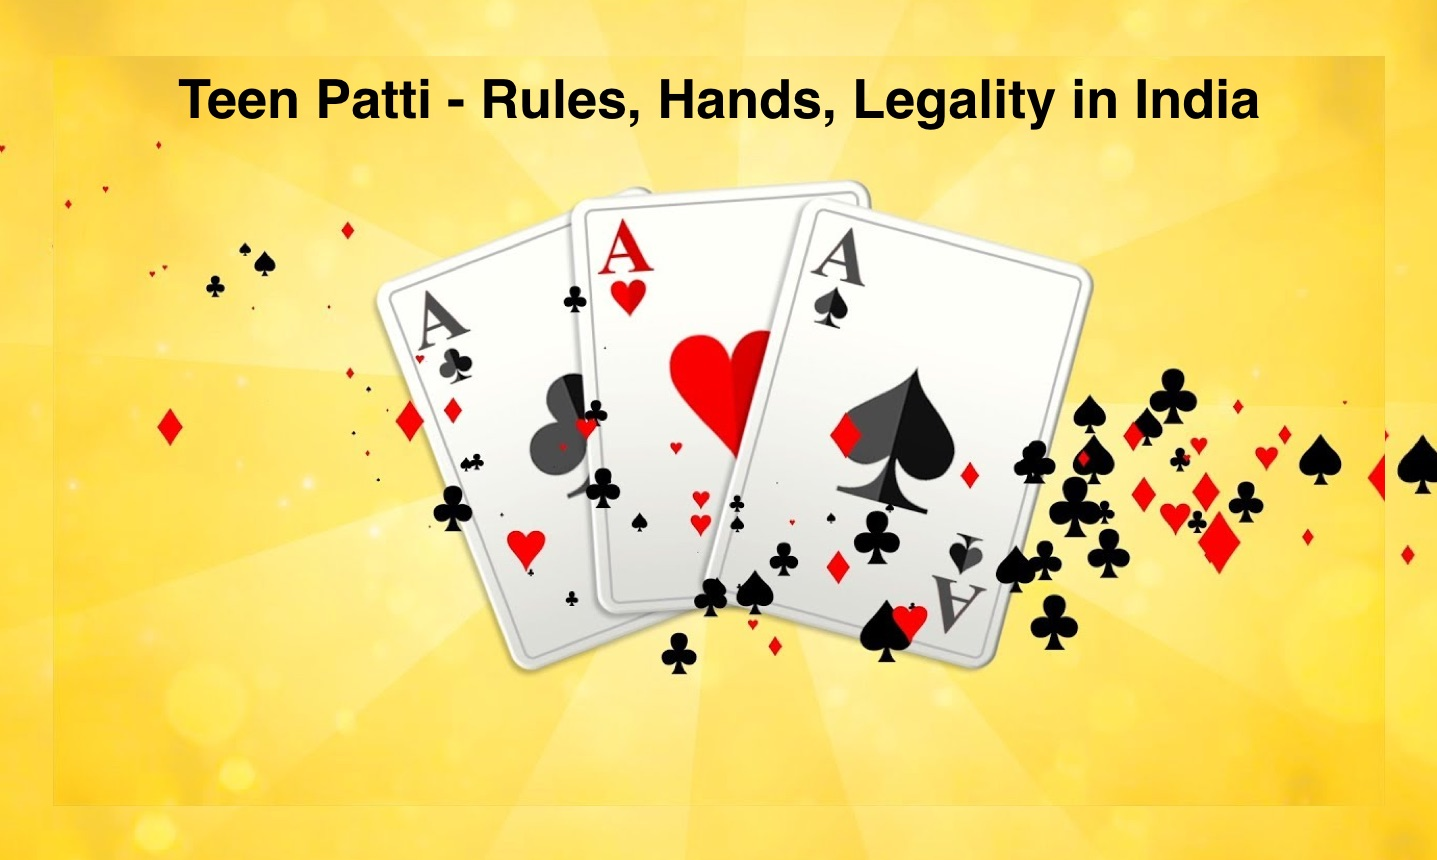 Teen Patti - Rules, Hands, Legality in India